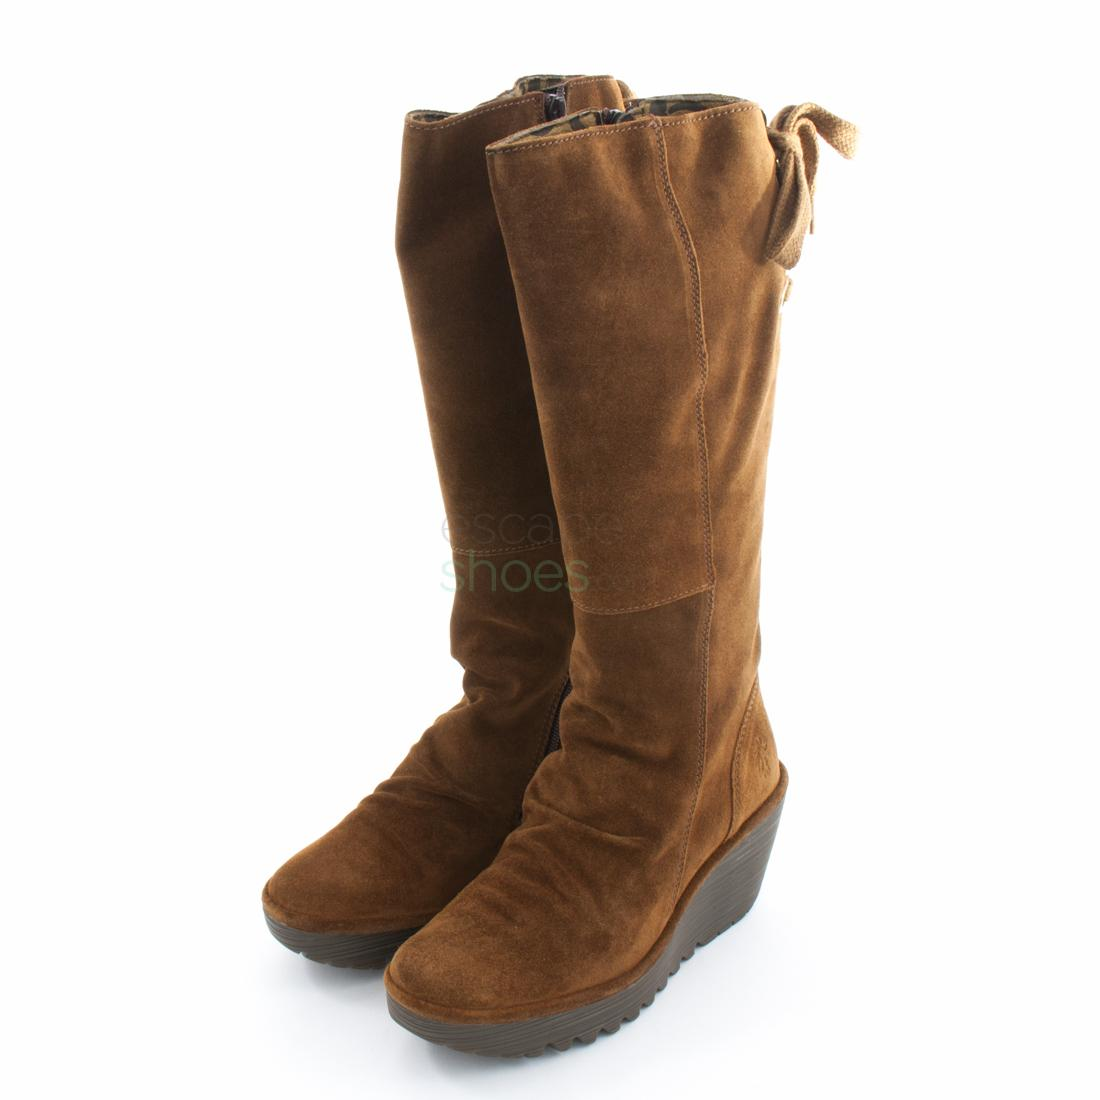 e8d107105d332 Buy your Boots FLY LONDON Yellow Yust Suede Camel P500327041 here ...